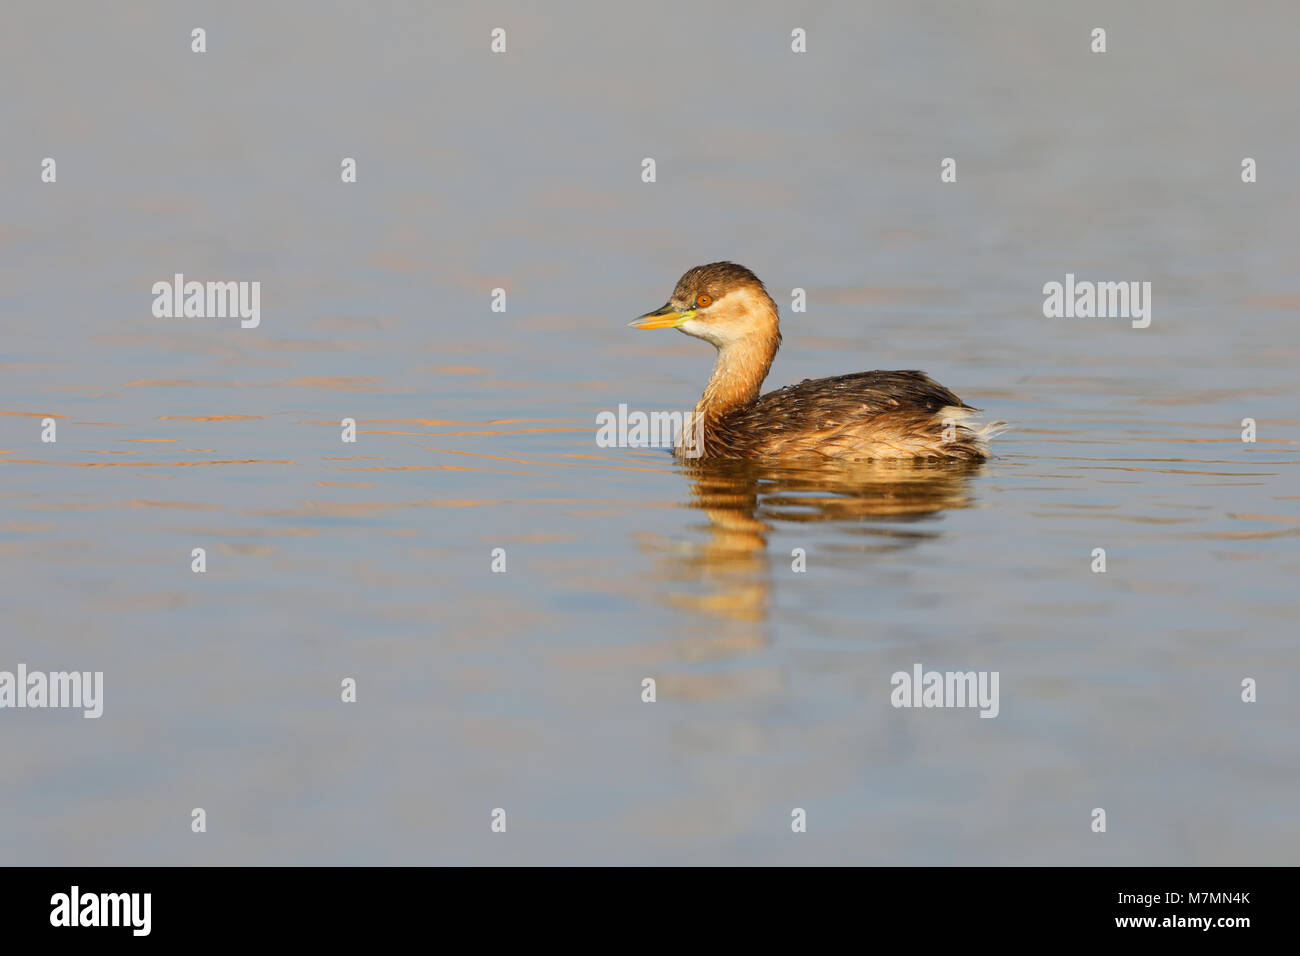 A non-breeding plumage Little Grebe (Tachybaptus ruficollis capensis) on a pool in Rajasthan, India - Stock Image